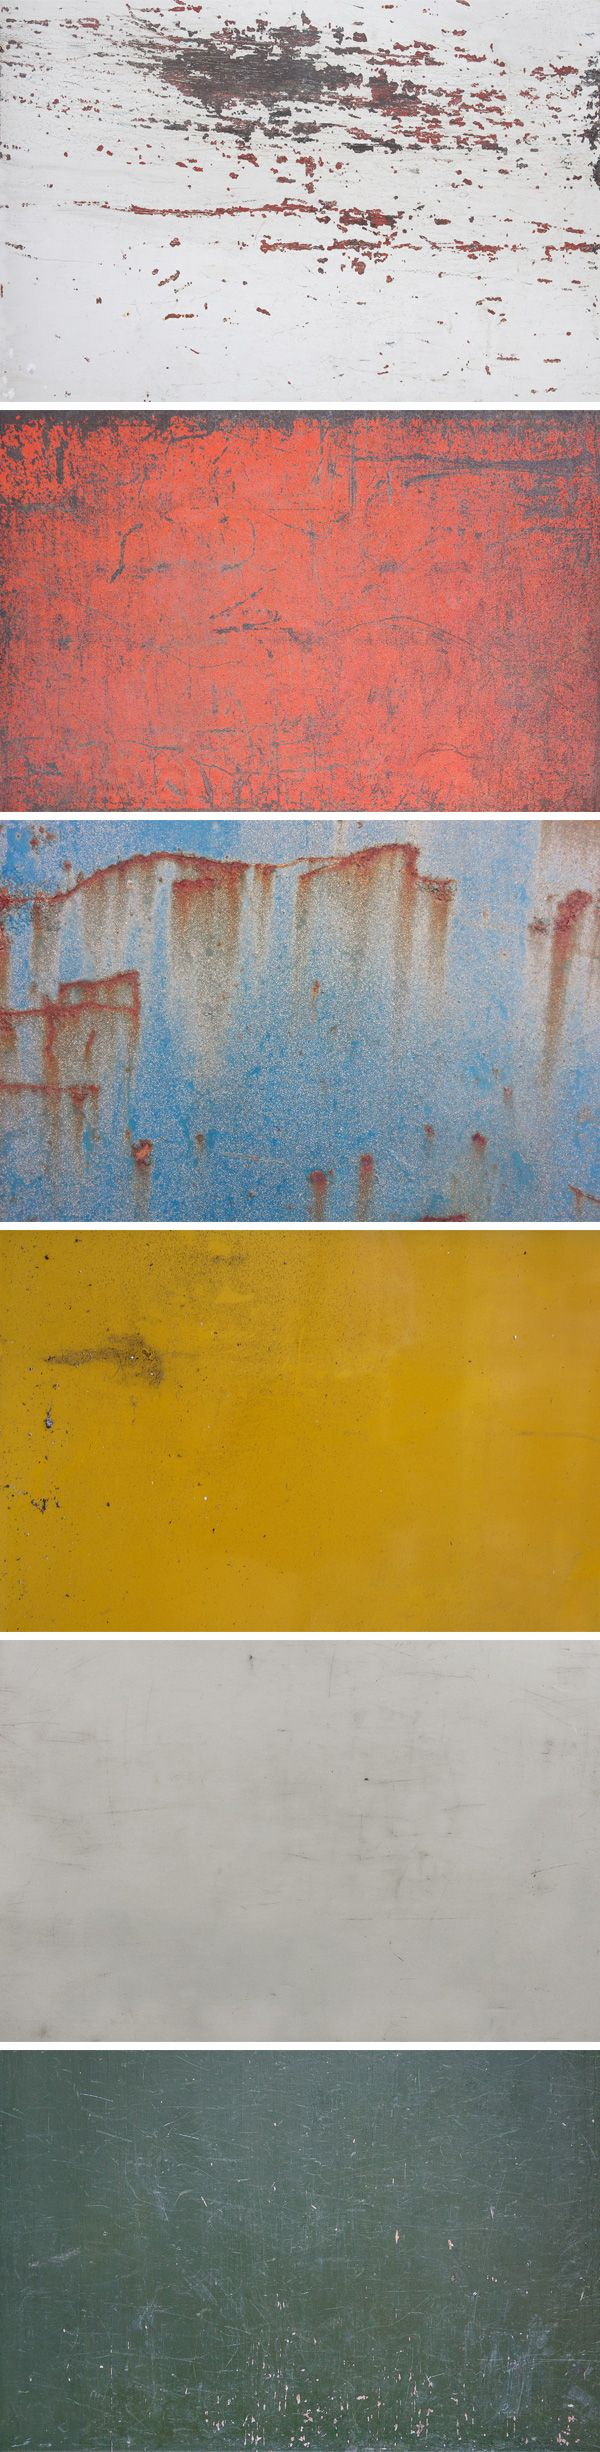 Free 6 Weathered Textures